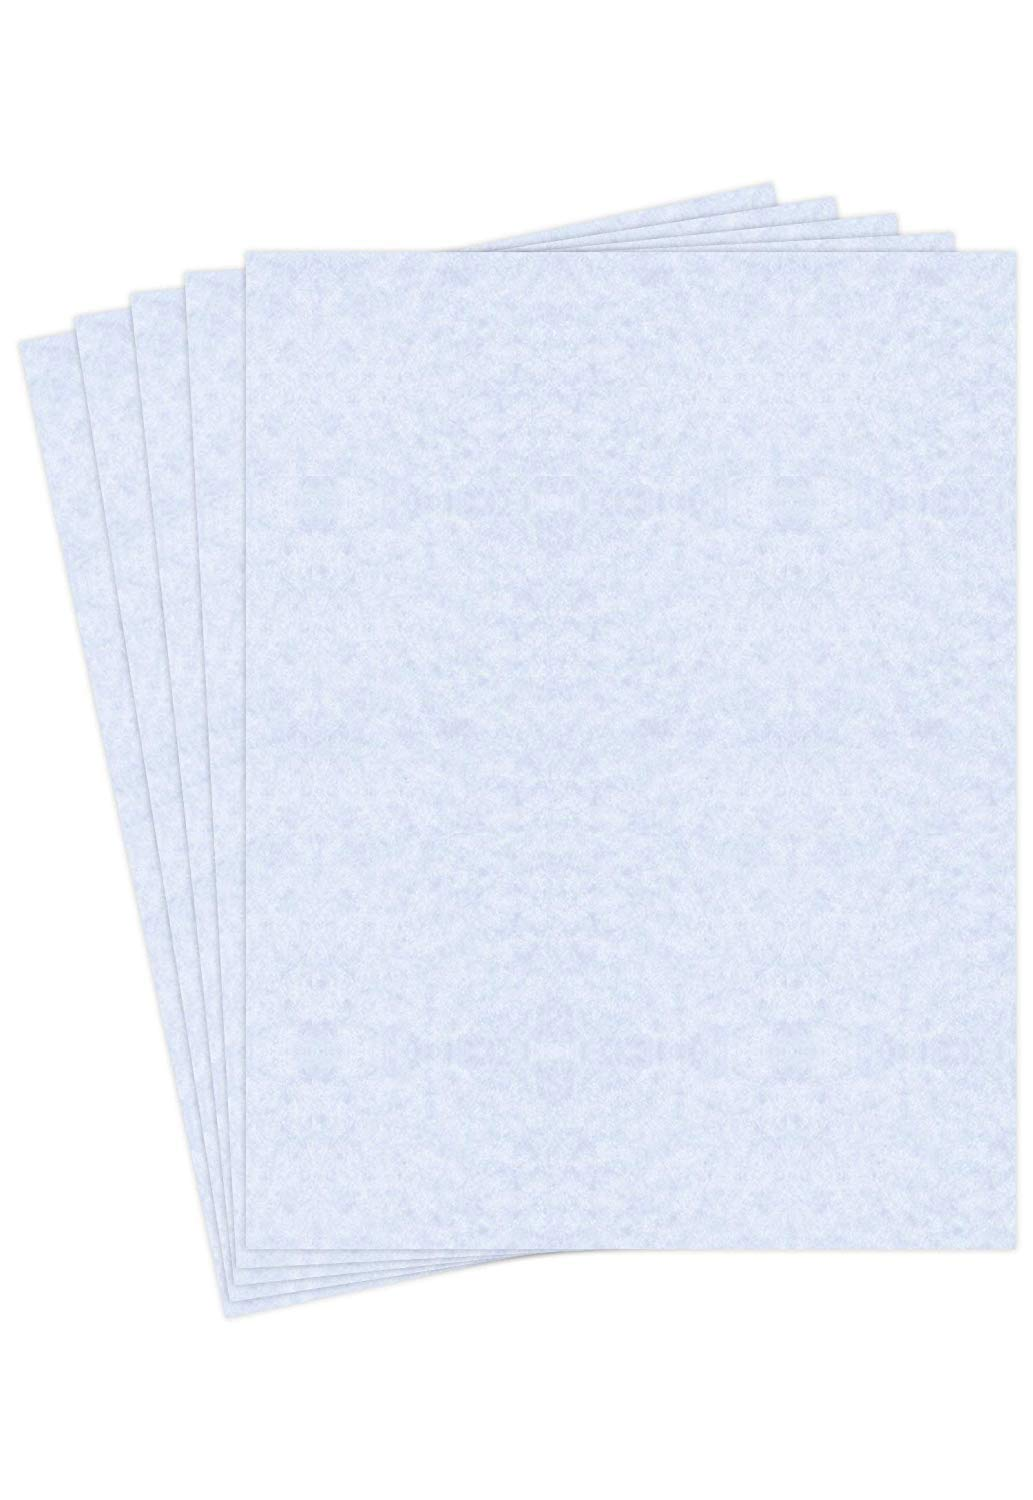 """Blue Stone Stationery Parchment Paper – Great for Writing, Certificates, Menus and Wedding Invitations   24Lb Bond Paper   8.5 x 11""""   50 Sheets/Pack"""